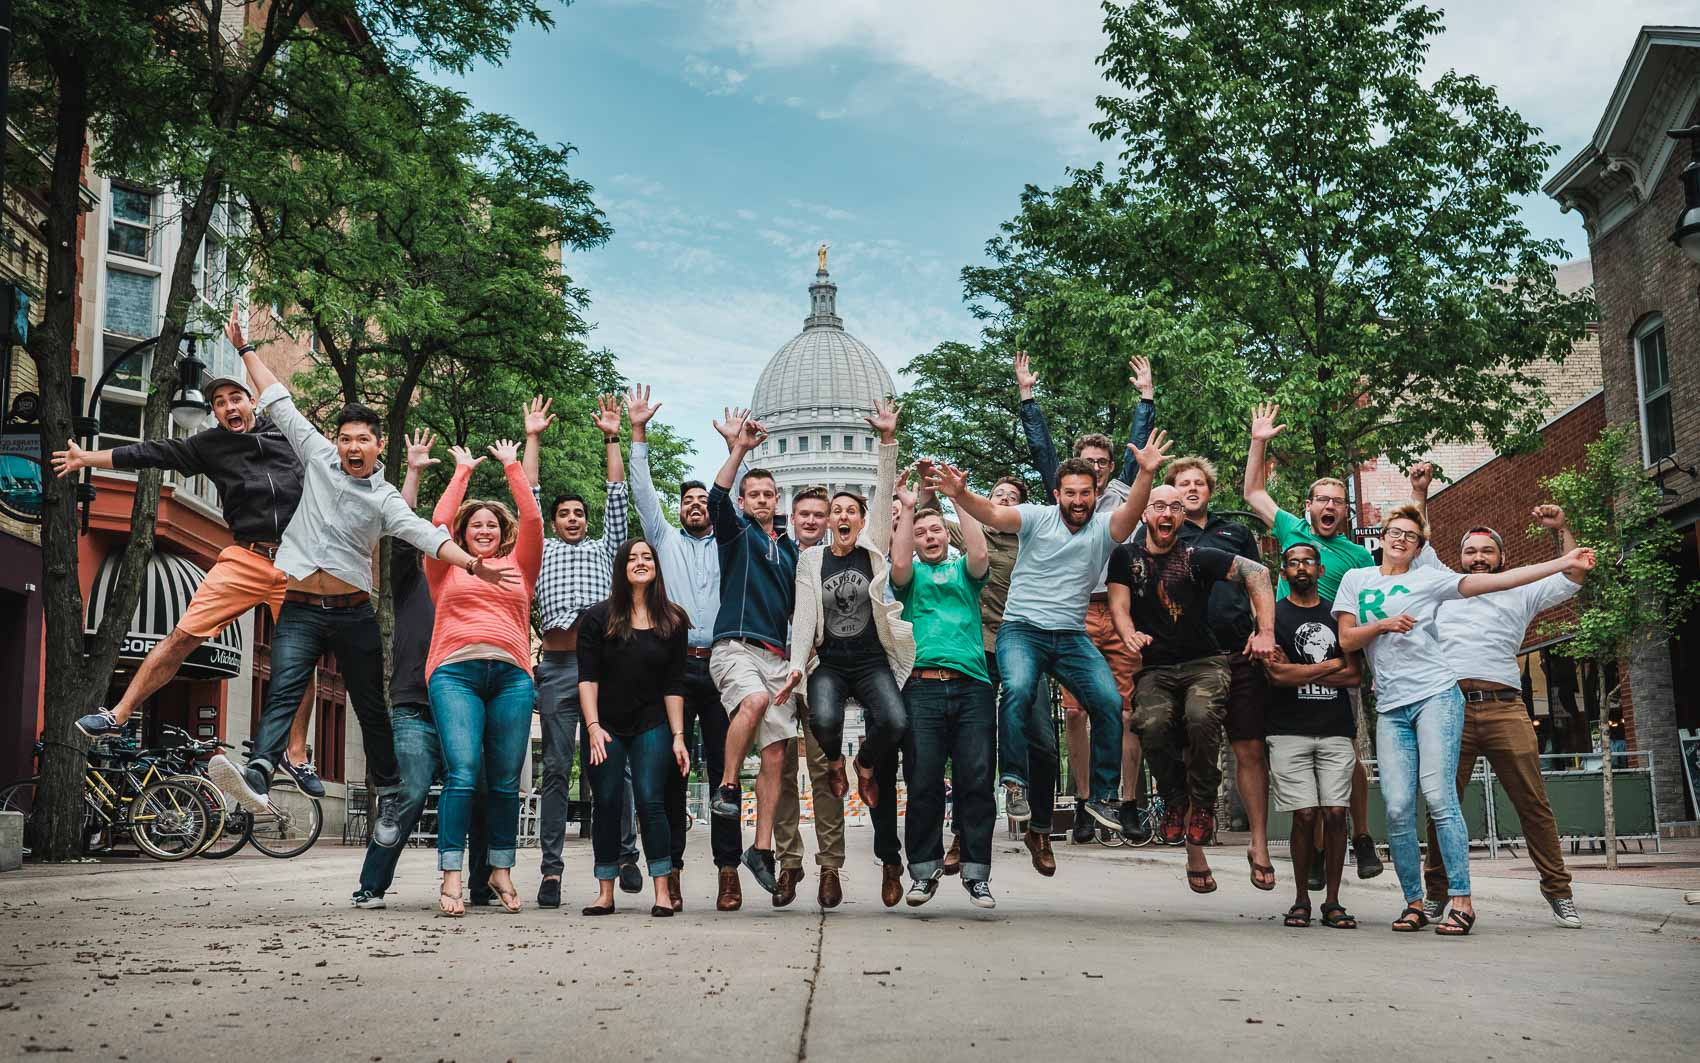 Redox company's business team photo in Madison, WI downtown